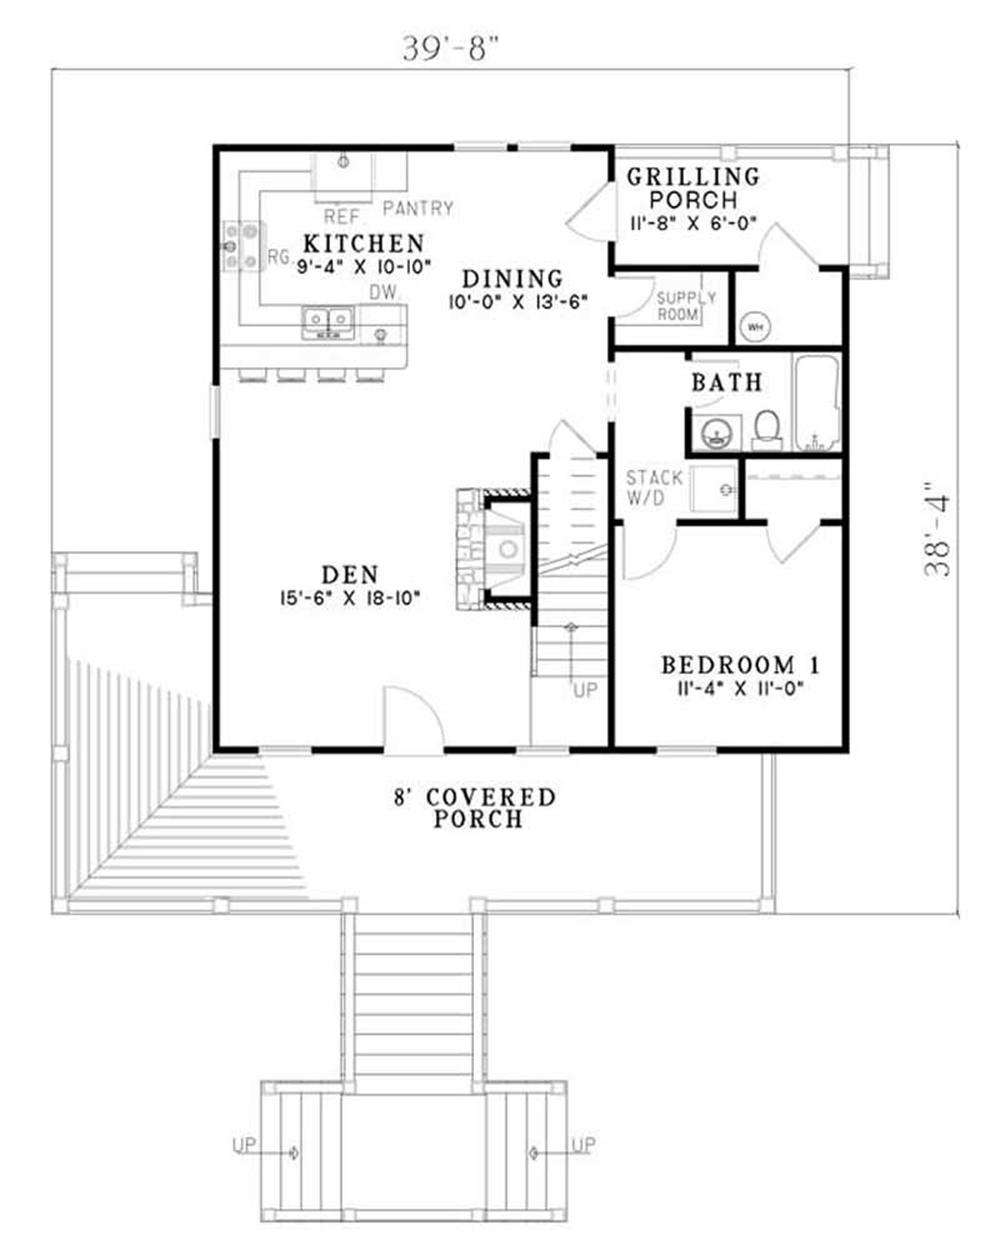 Home Plan NDG-1188 first floor